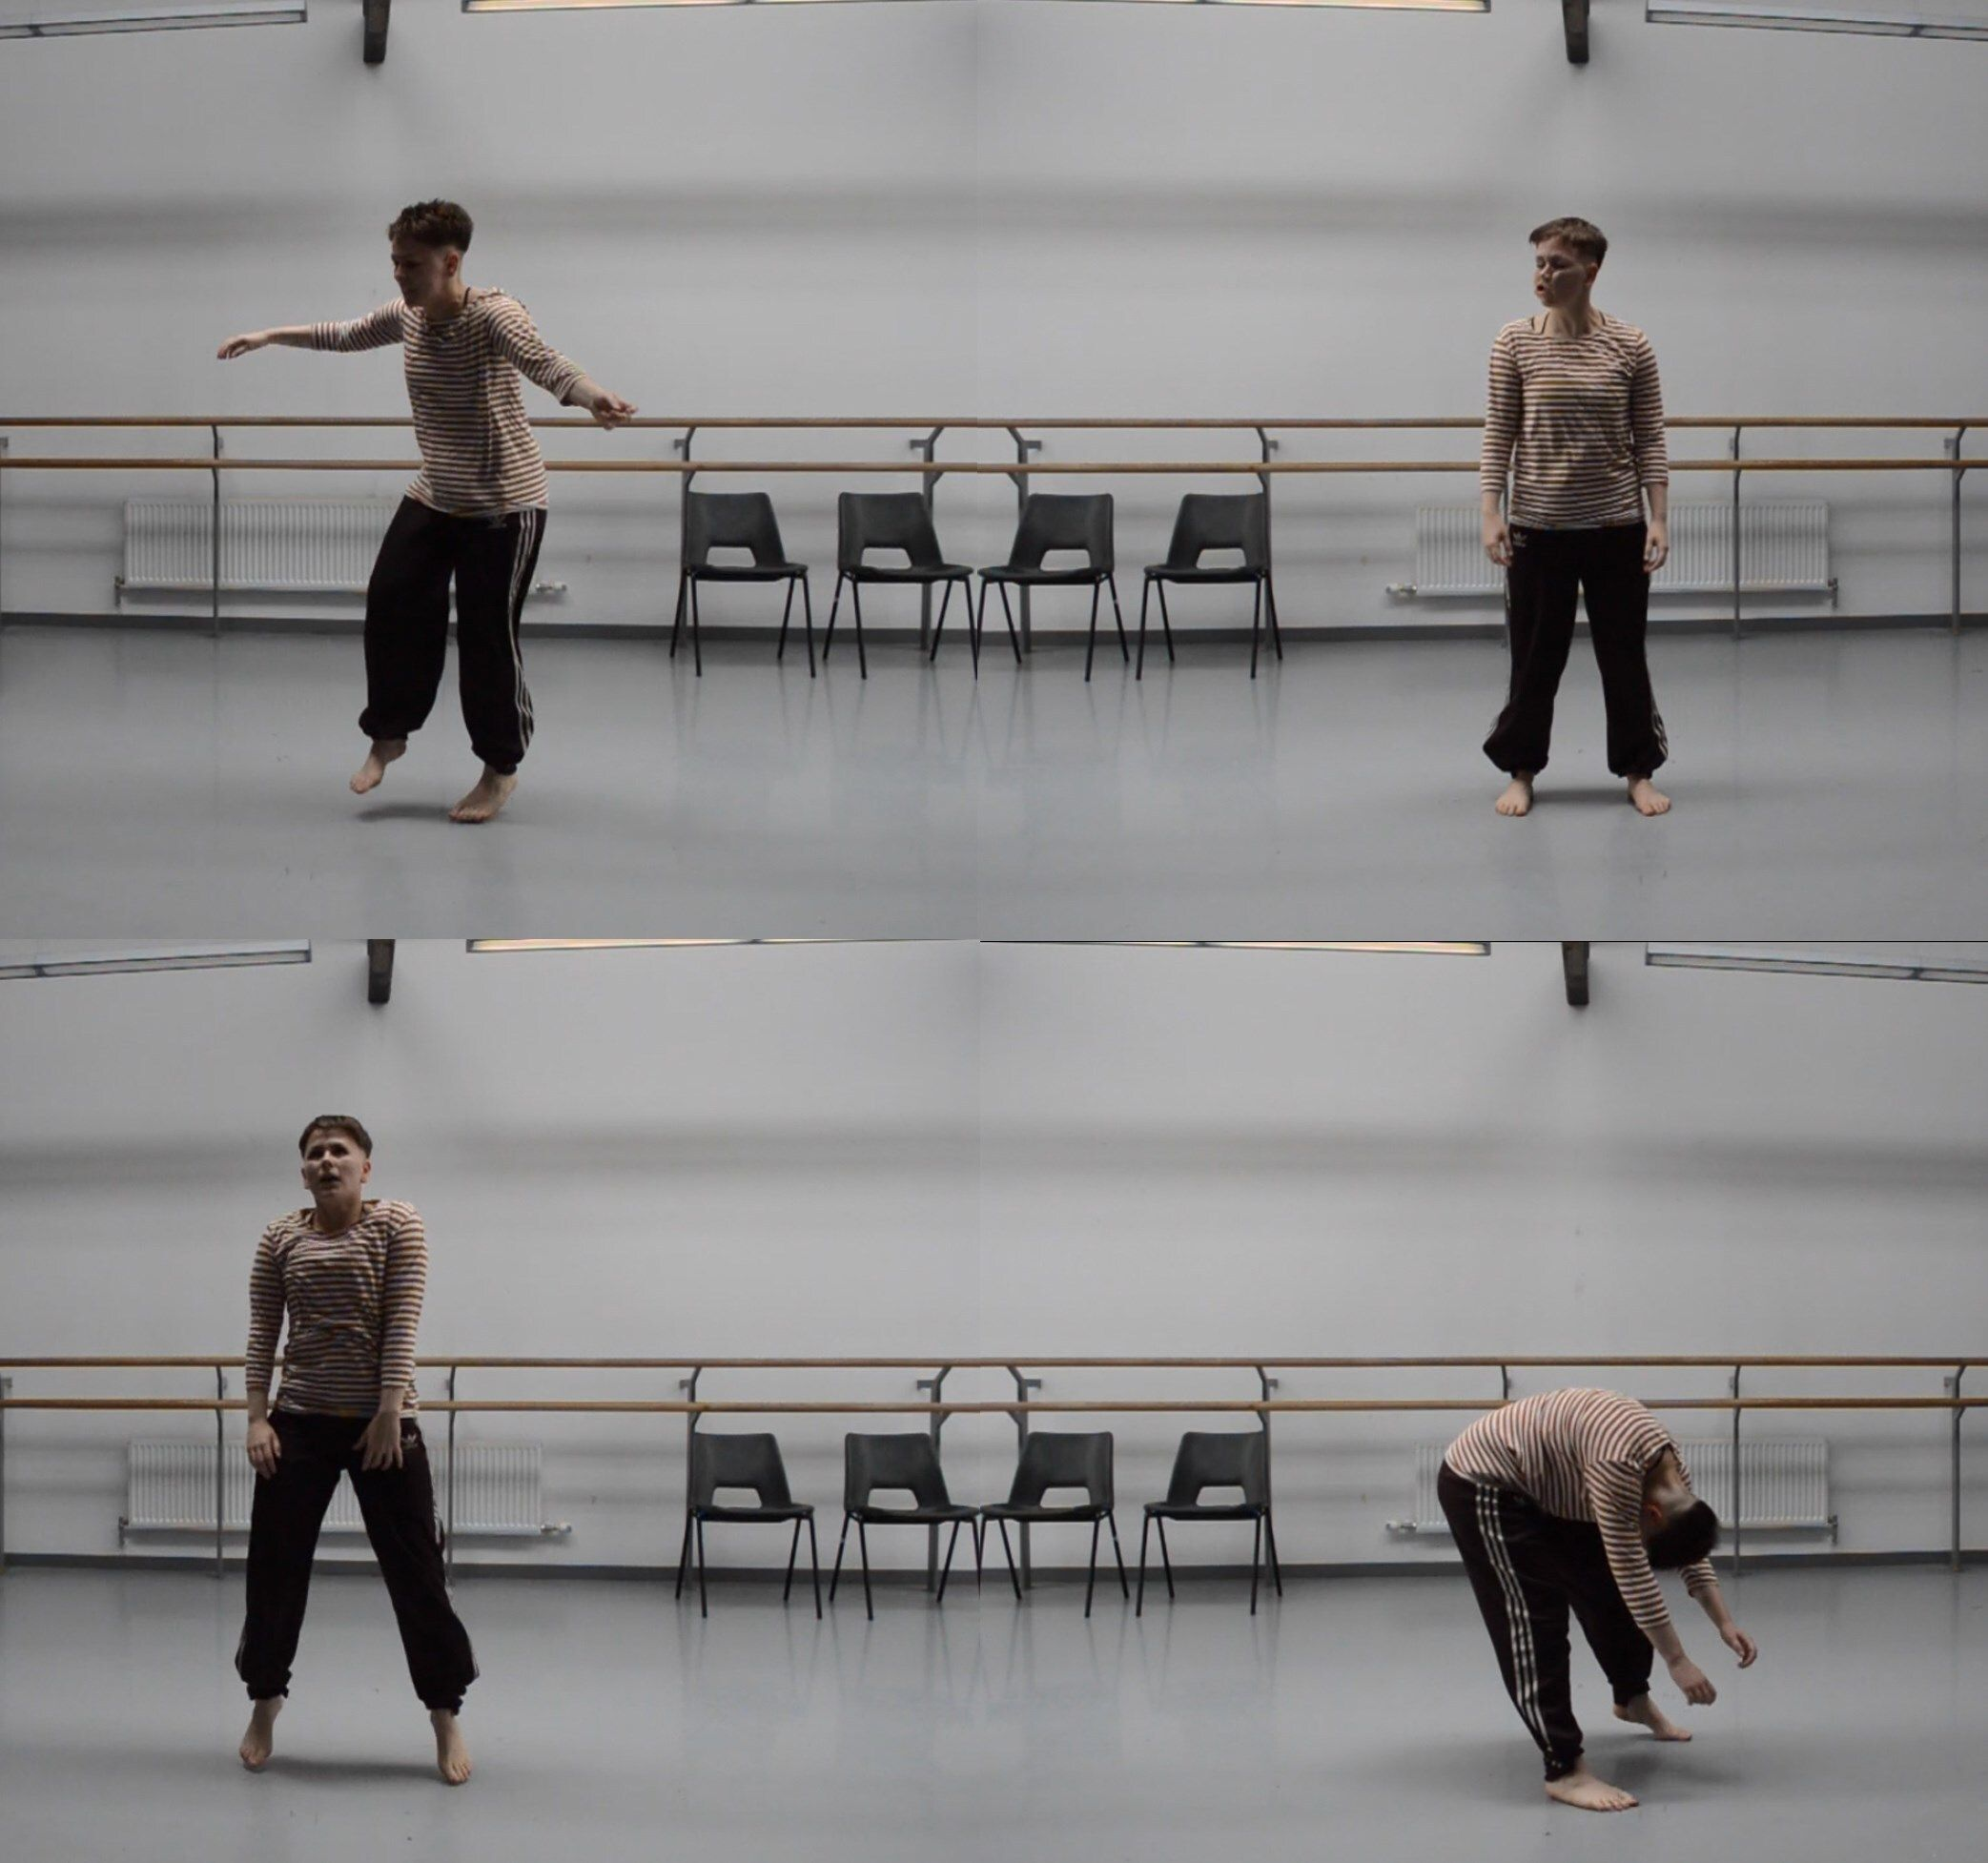 Two landscape photographs in a collage. Both show a dance studio in which the same two people are moving. In the top photograph, one person has their arms outstretched while the other stands still. In the bottom, they reverse, so the opposite person is now dynamic and folder over while the other remains standing.